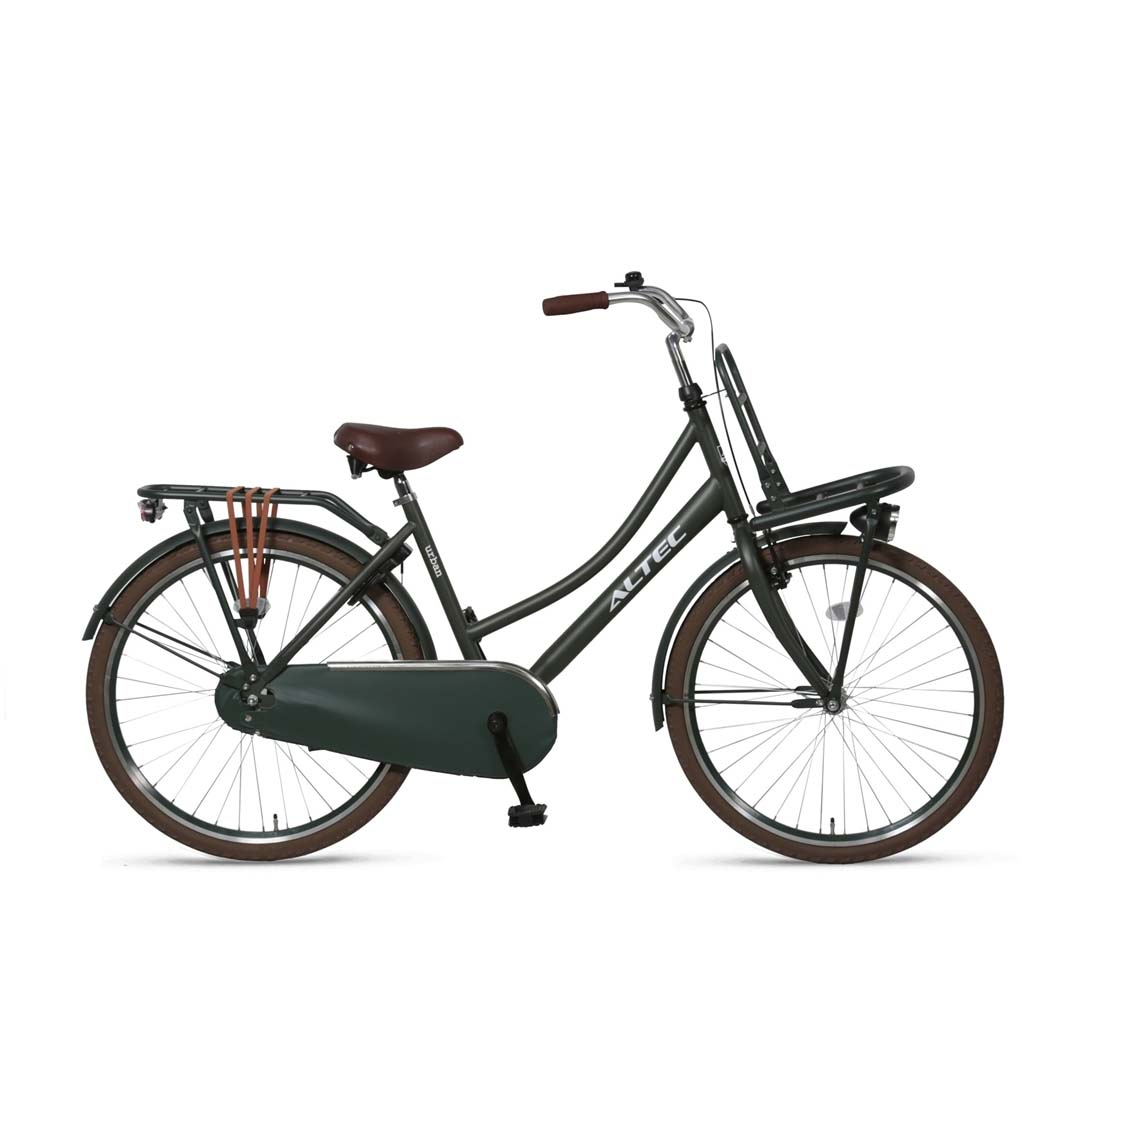 Altec-Urban-26inch-Transportfiets-Army-Green-2019 copy